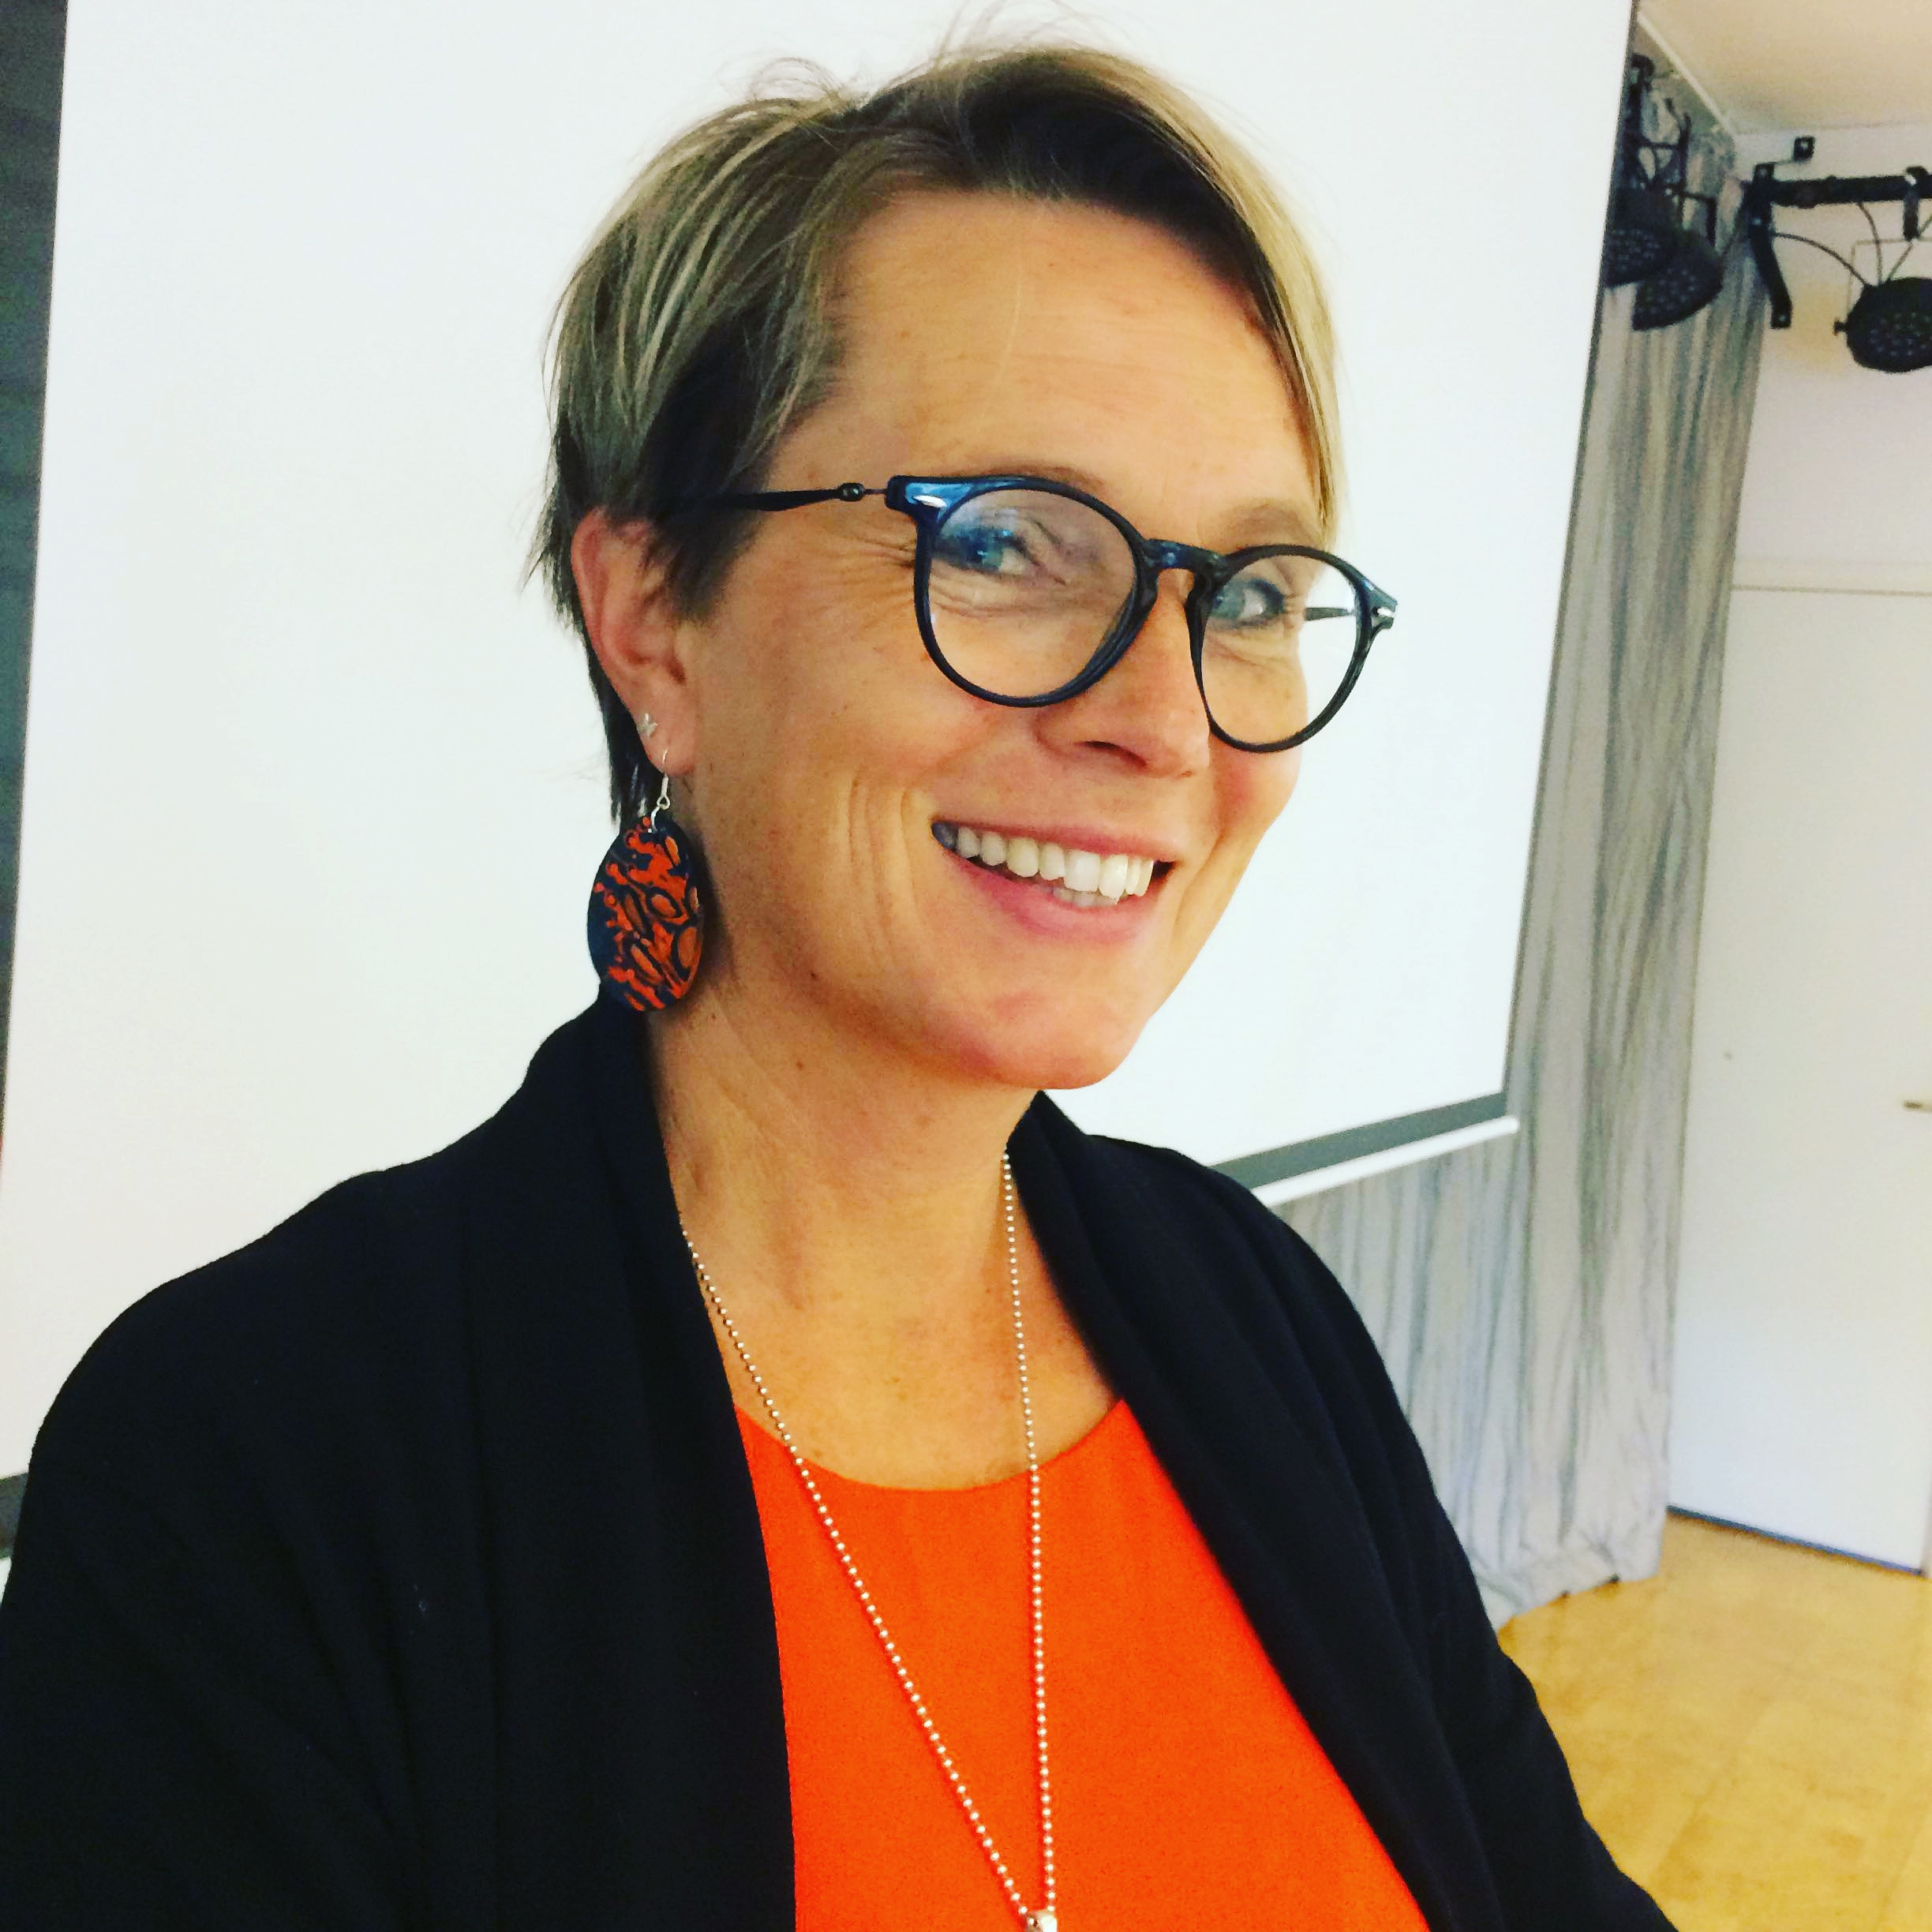 Pernilla rocking Orange!